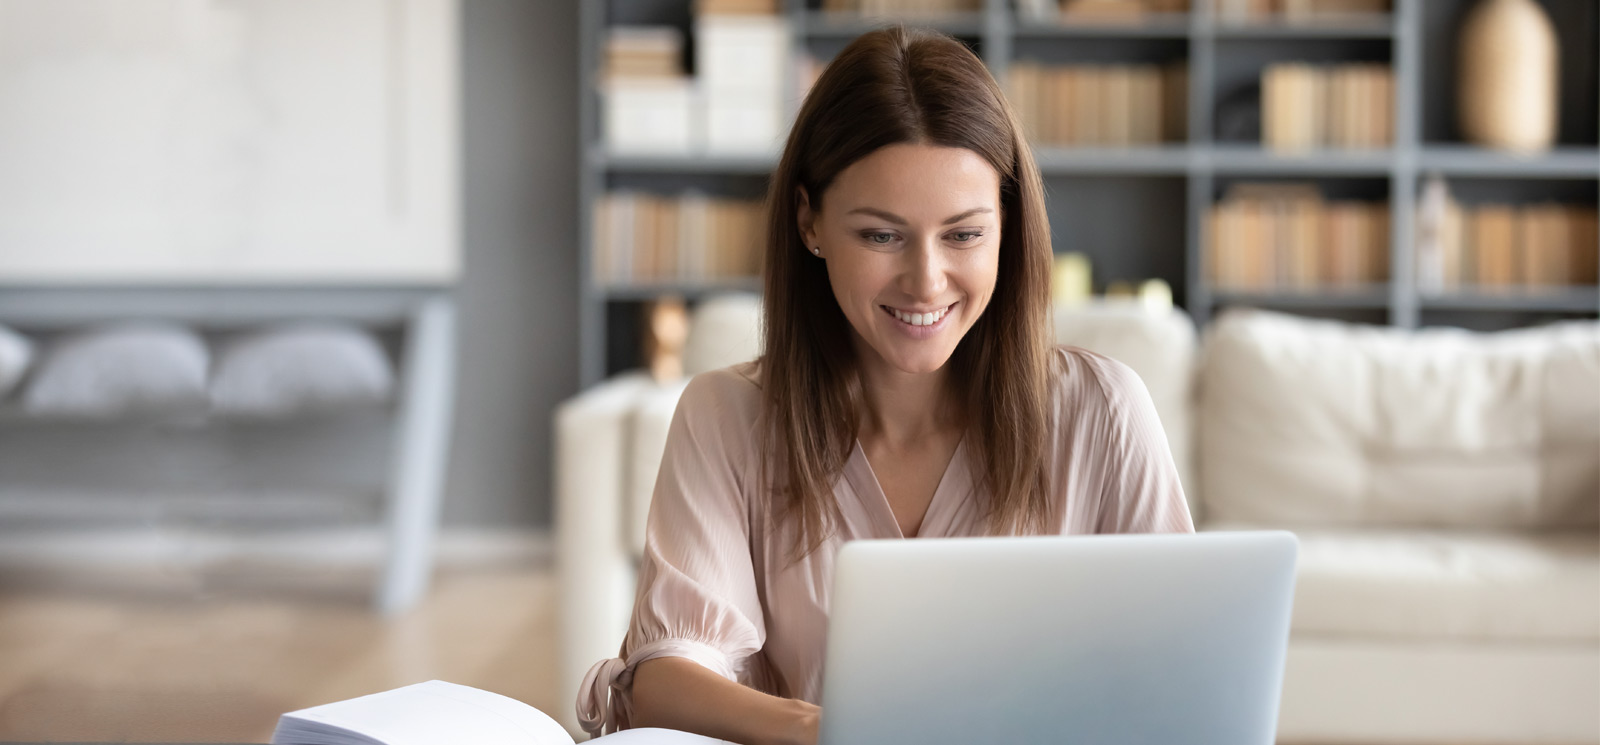 smiling woman using laptop